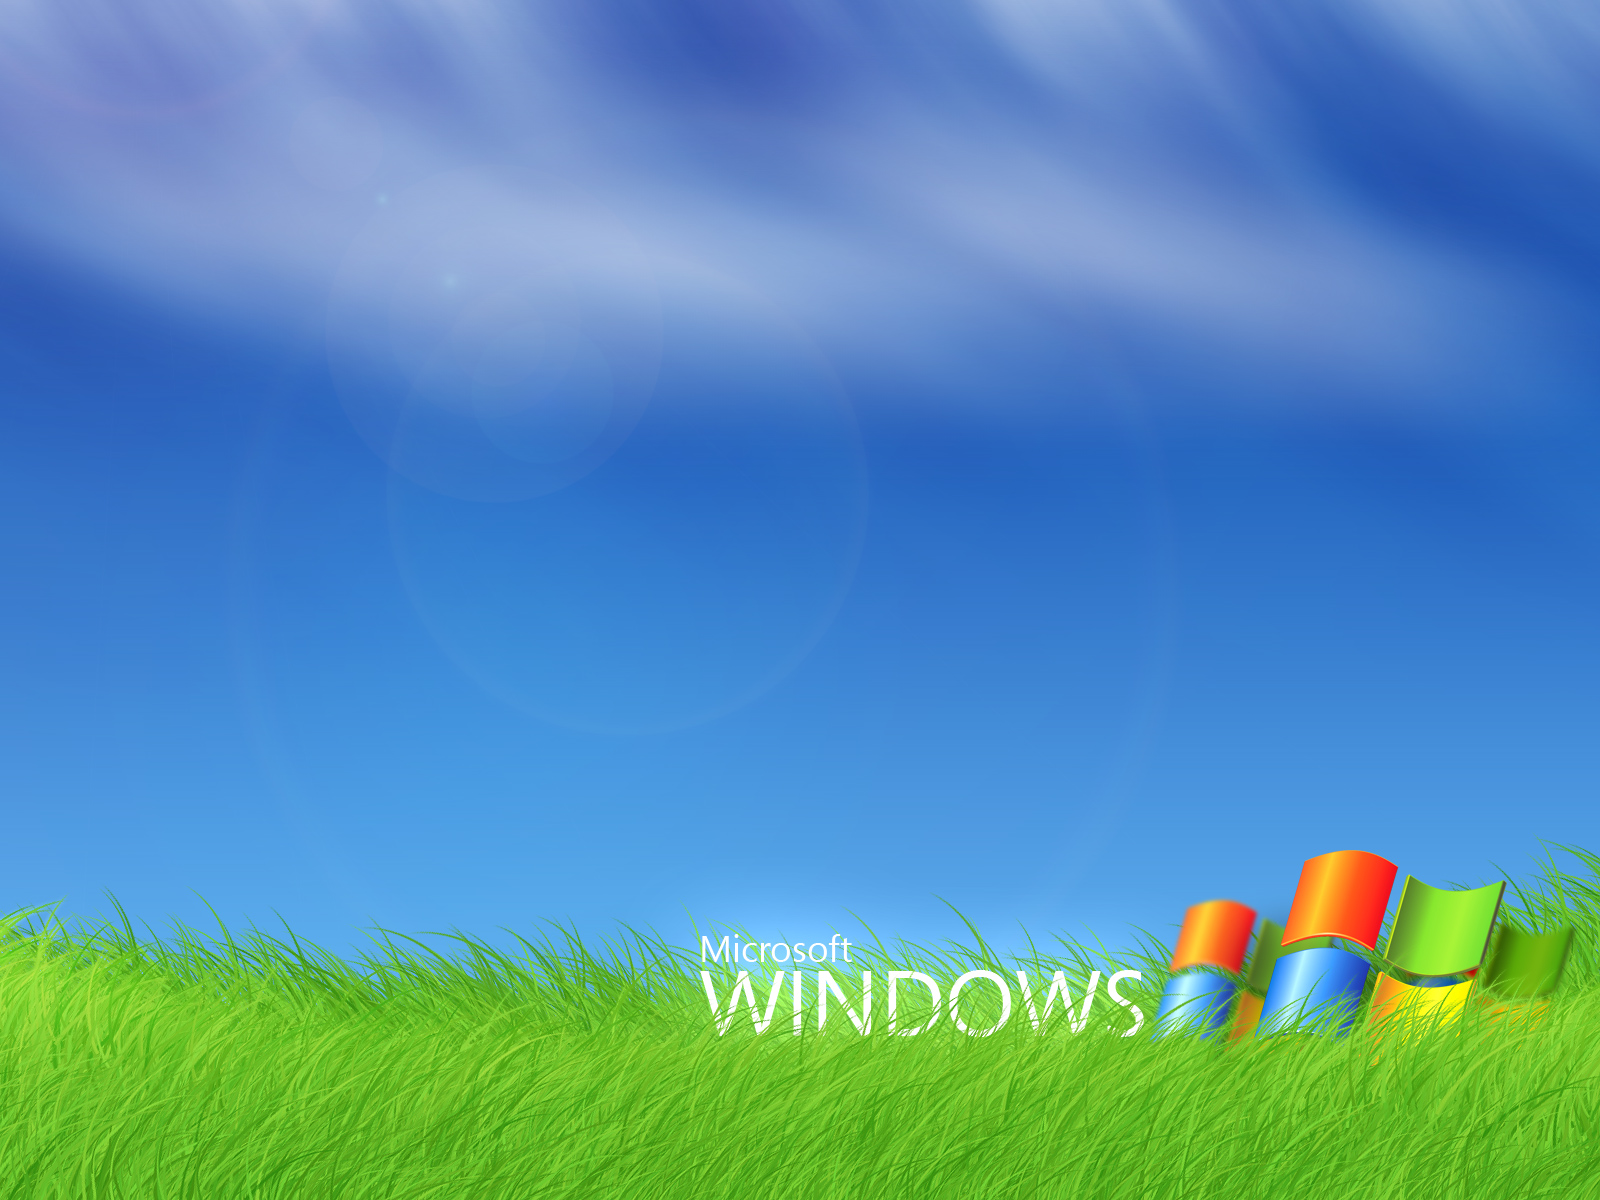 http://1.bp.blogspot.com/-qRXHxHmvi2Y/T6ASb0UTwTI/AAAAAAAA3EE/yltGaOnszX8/s1600/wallpapers-logotipo-windows-xp.jpg